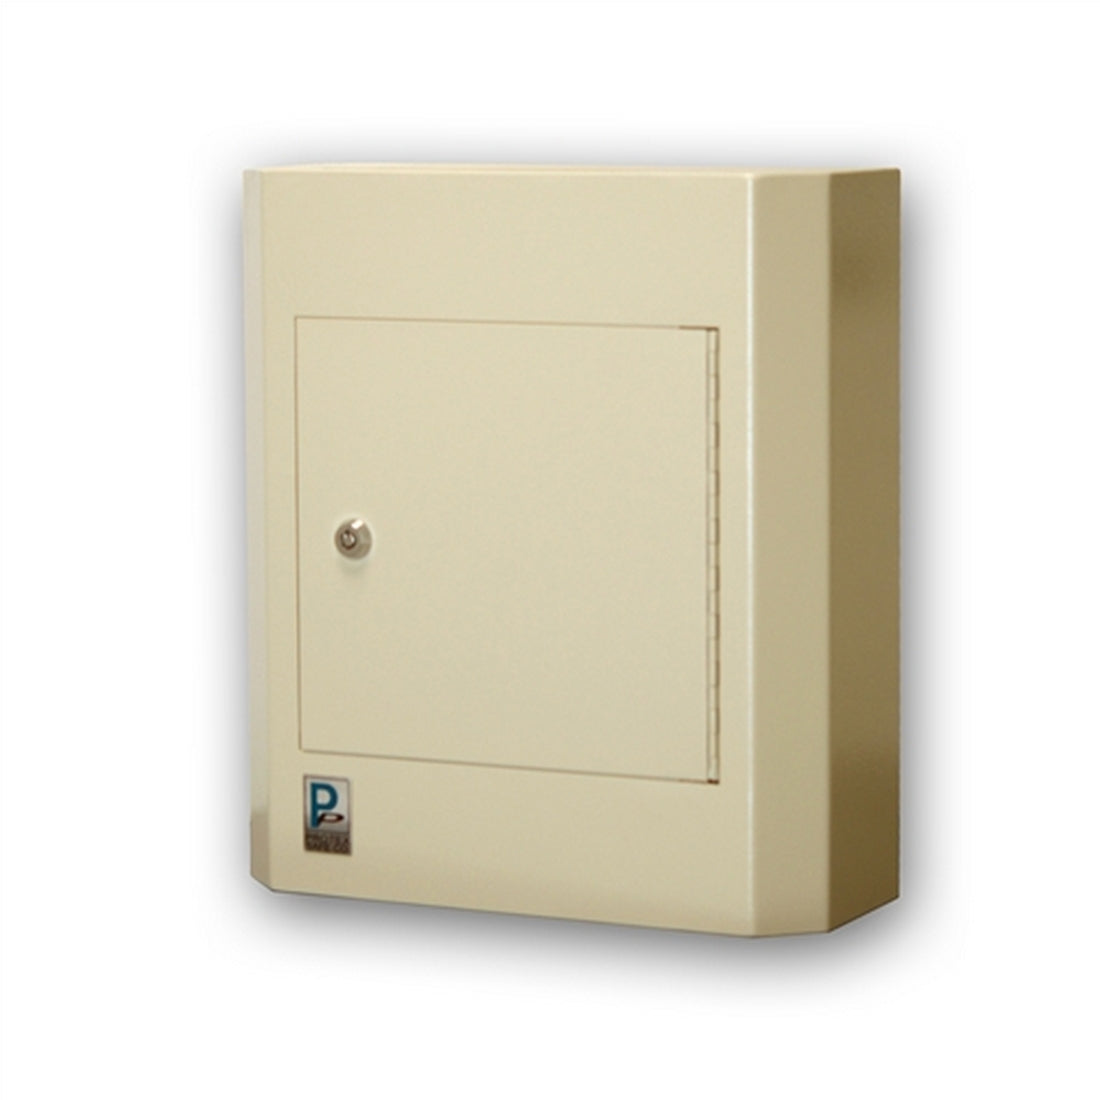 Protex Safe SDL-400K Wall Mounted Drop Box With Key Lock